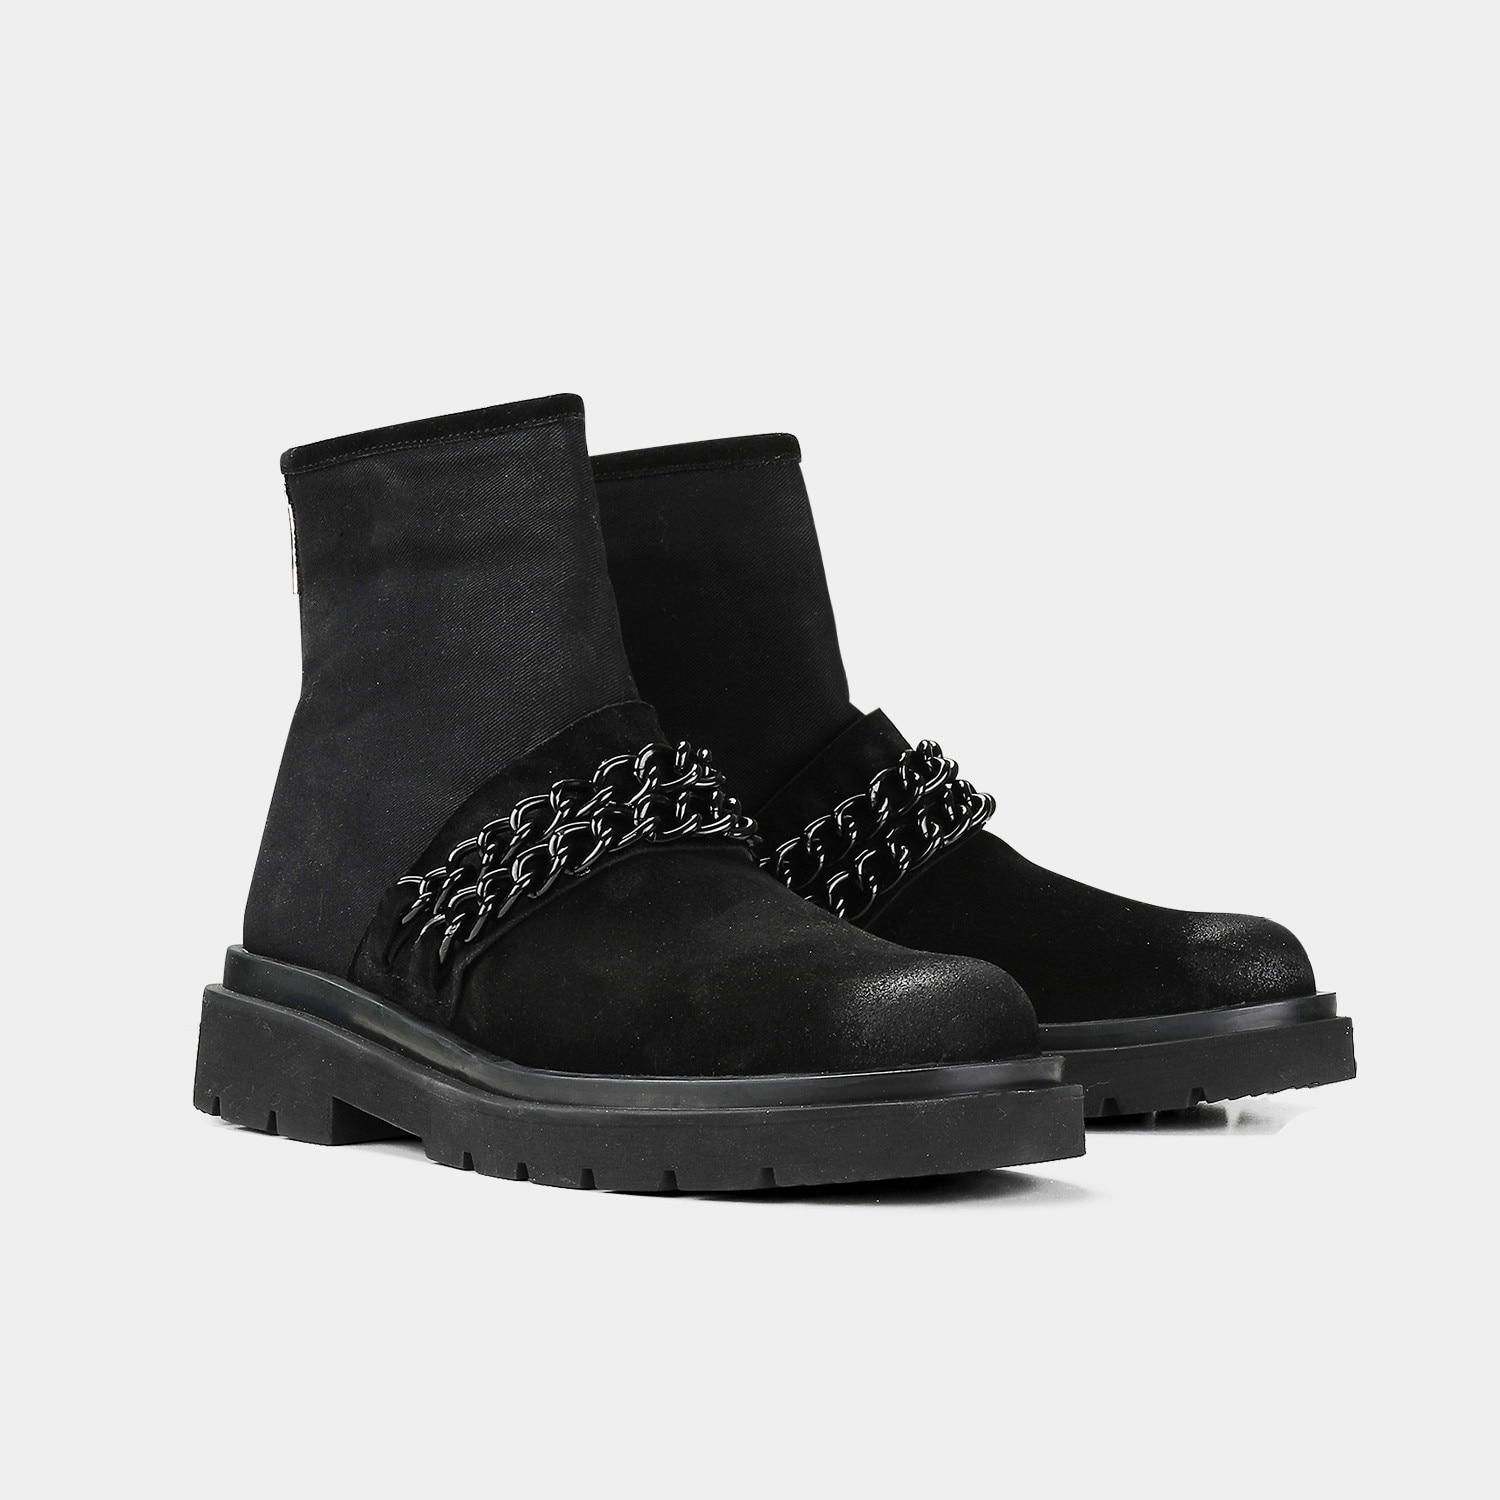 Gothic Dark Wind Chain Decoration Personality High-top Shoes Men's Leather Ankle Boots Heel Zipper Boots